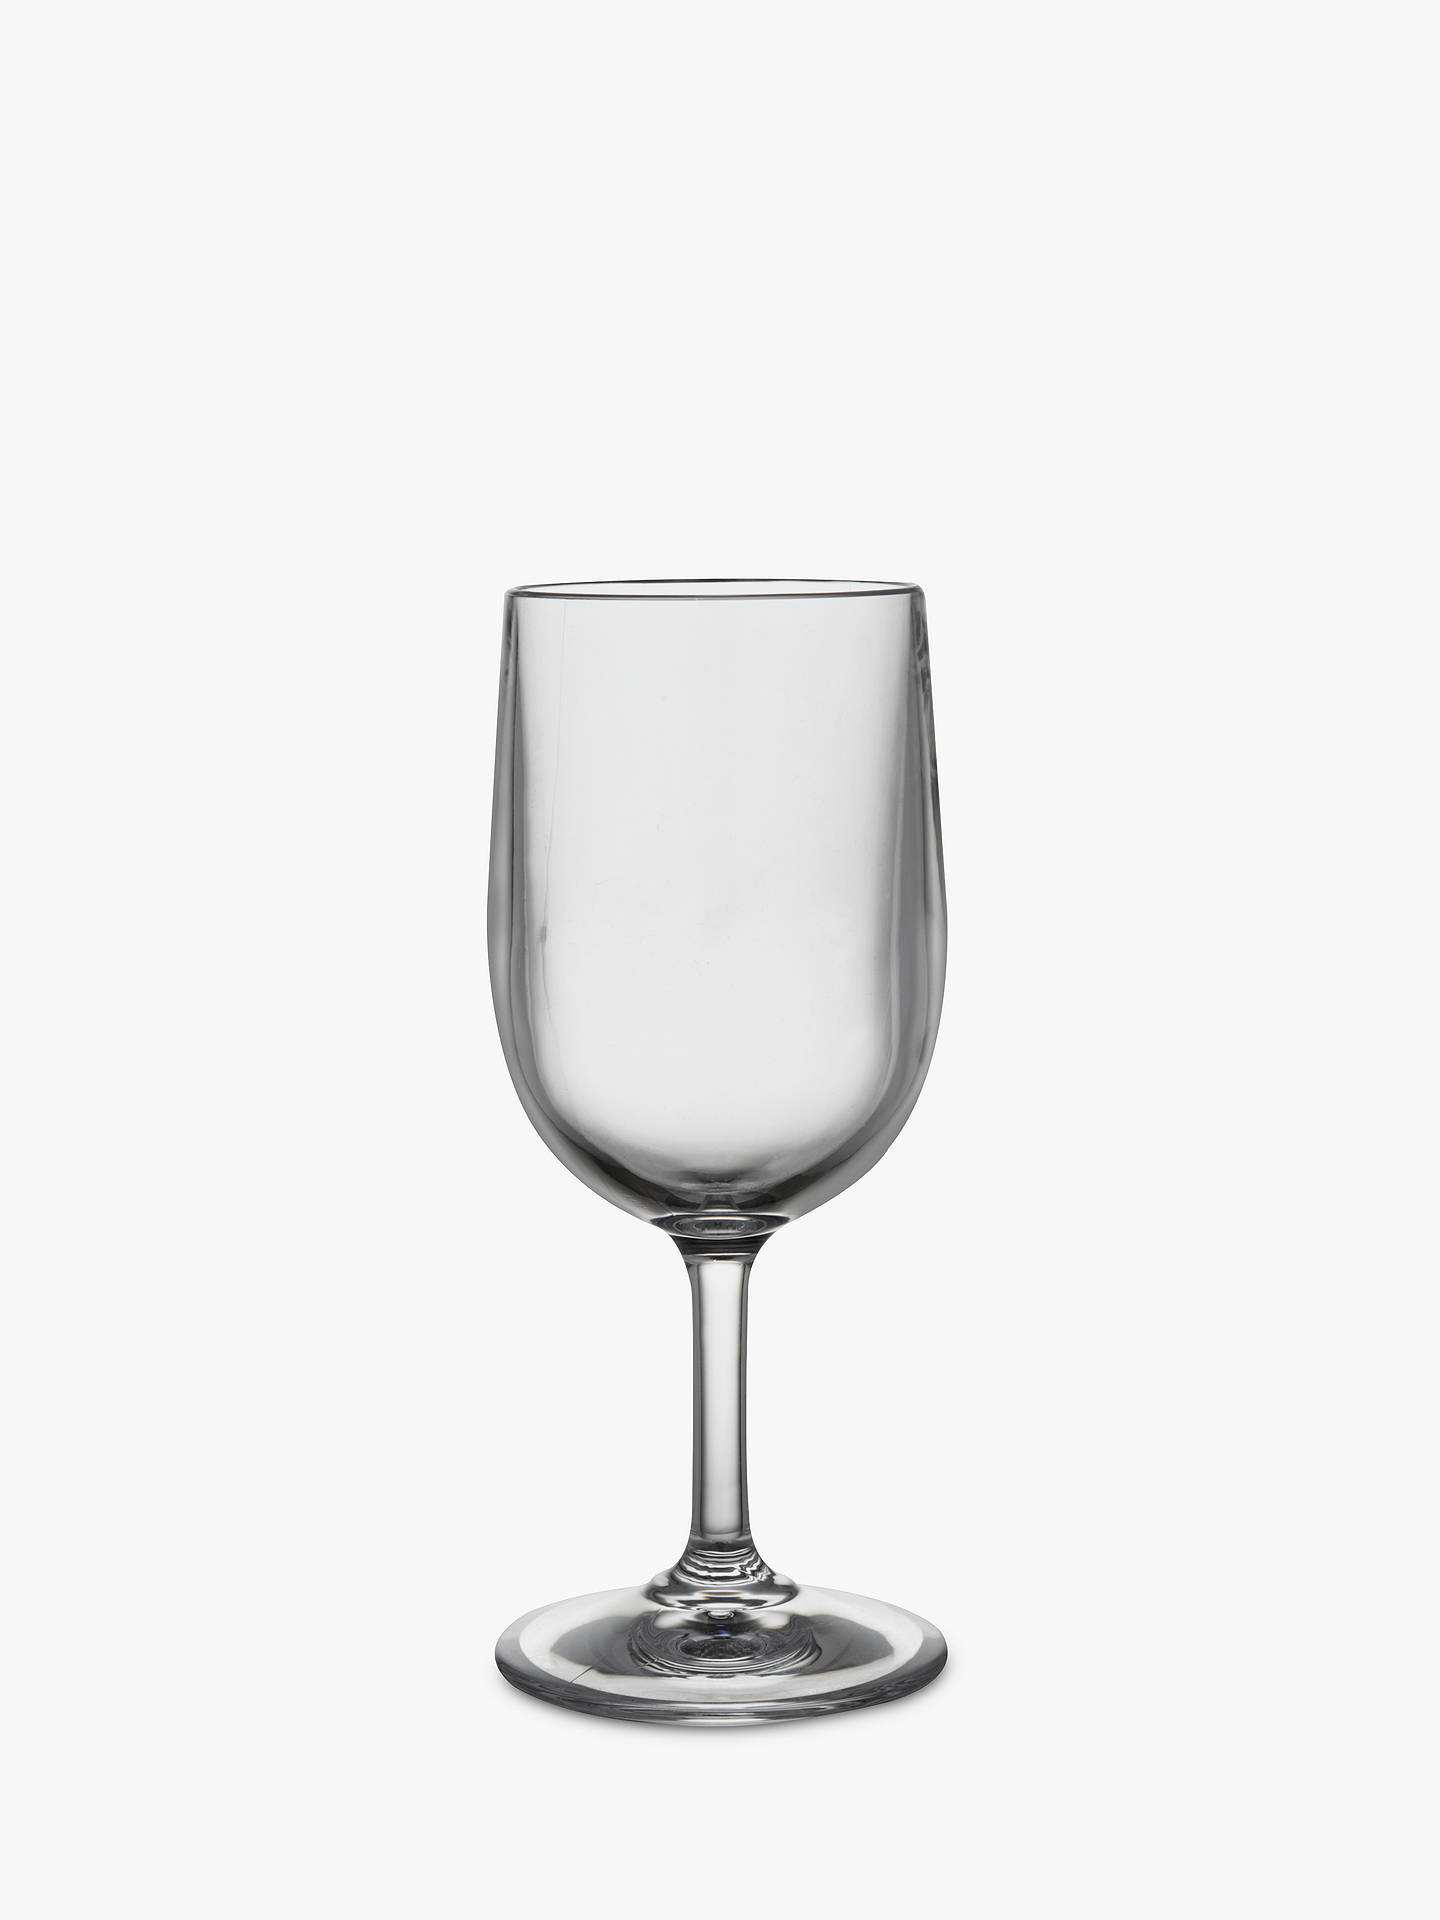 Buy Strahl Polycarbonate Picnic Wine Glass, Large Online at johnlewis.com